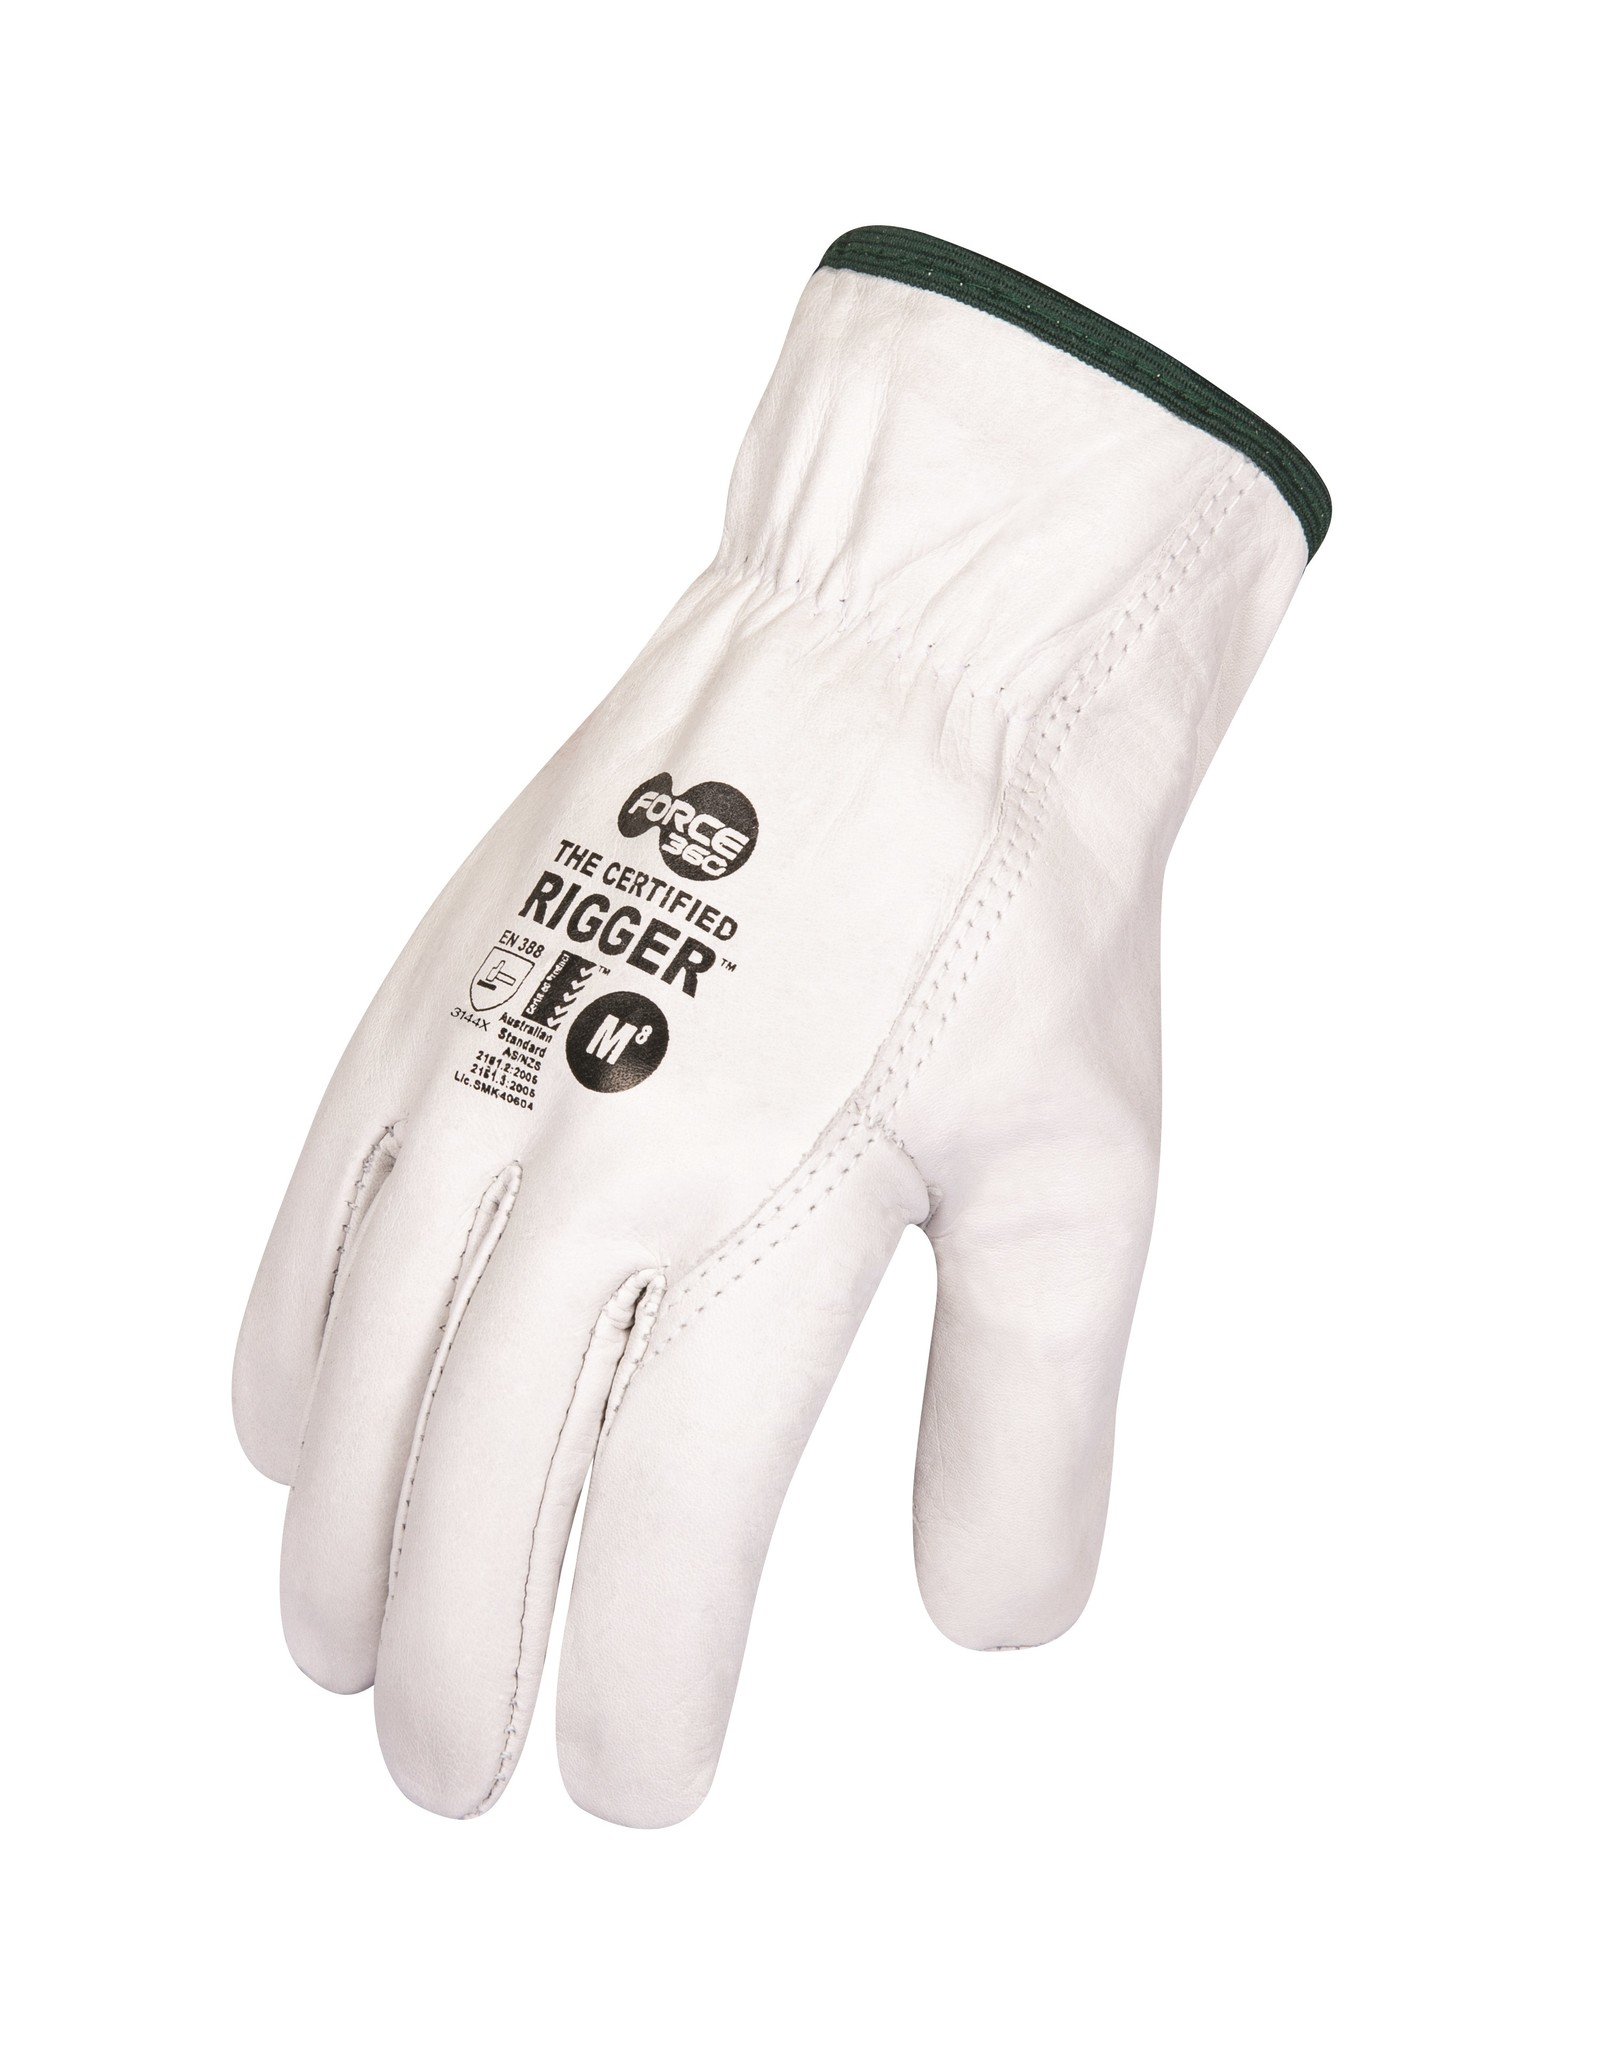 Force360 Force360 WORX600 The Certified Rigger Glove